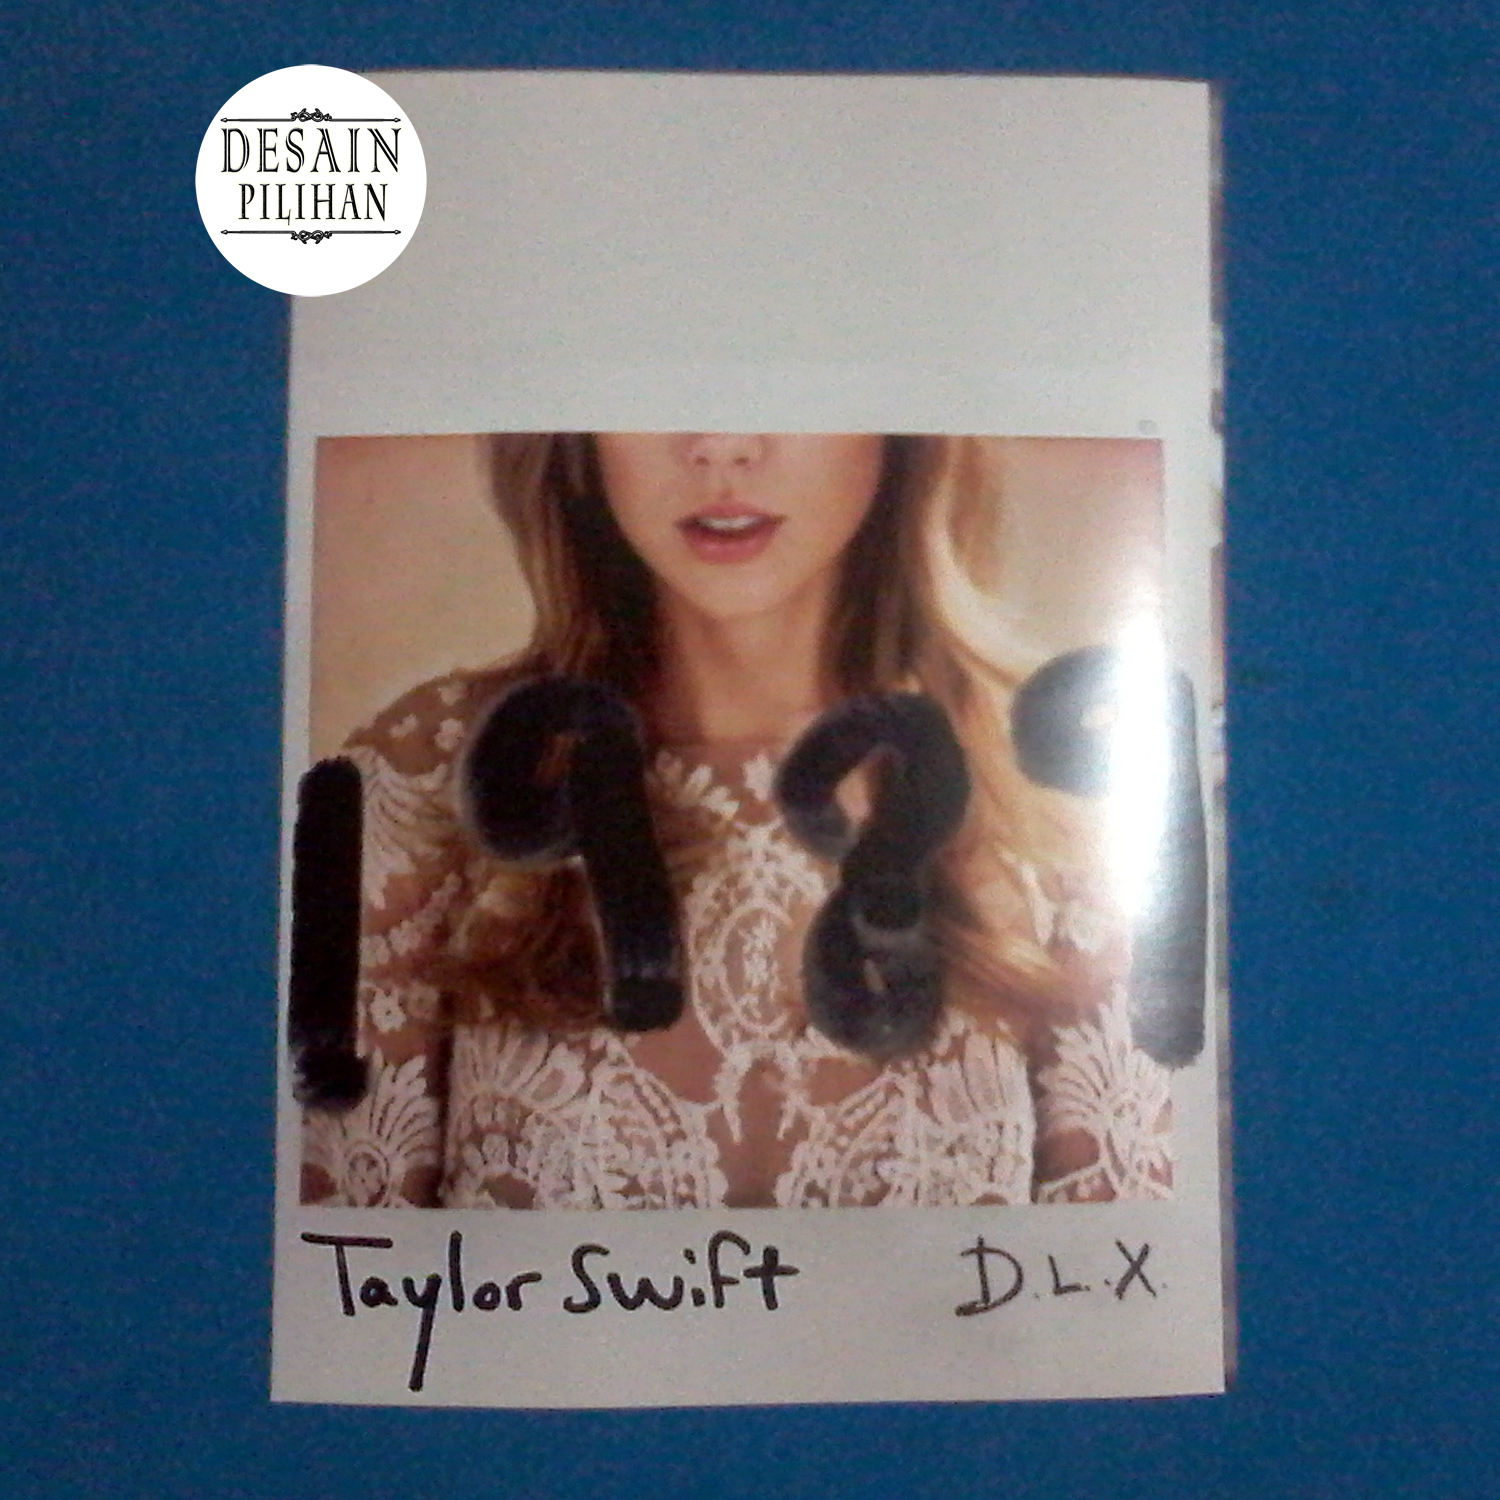 POSTER TAYLOR SWIFT 1989